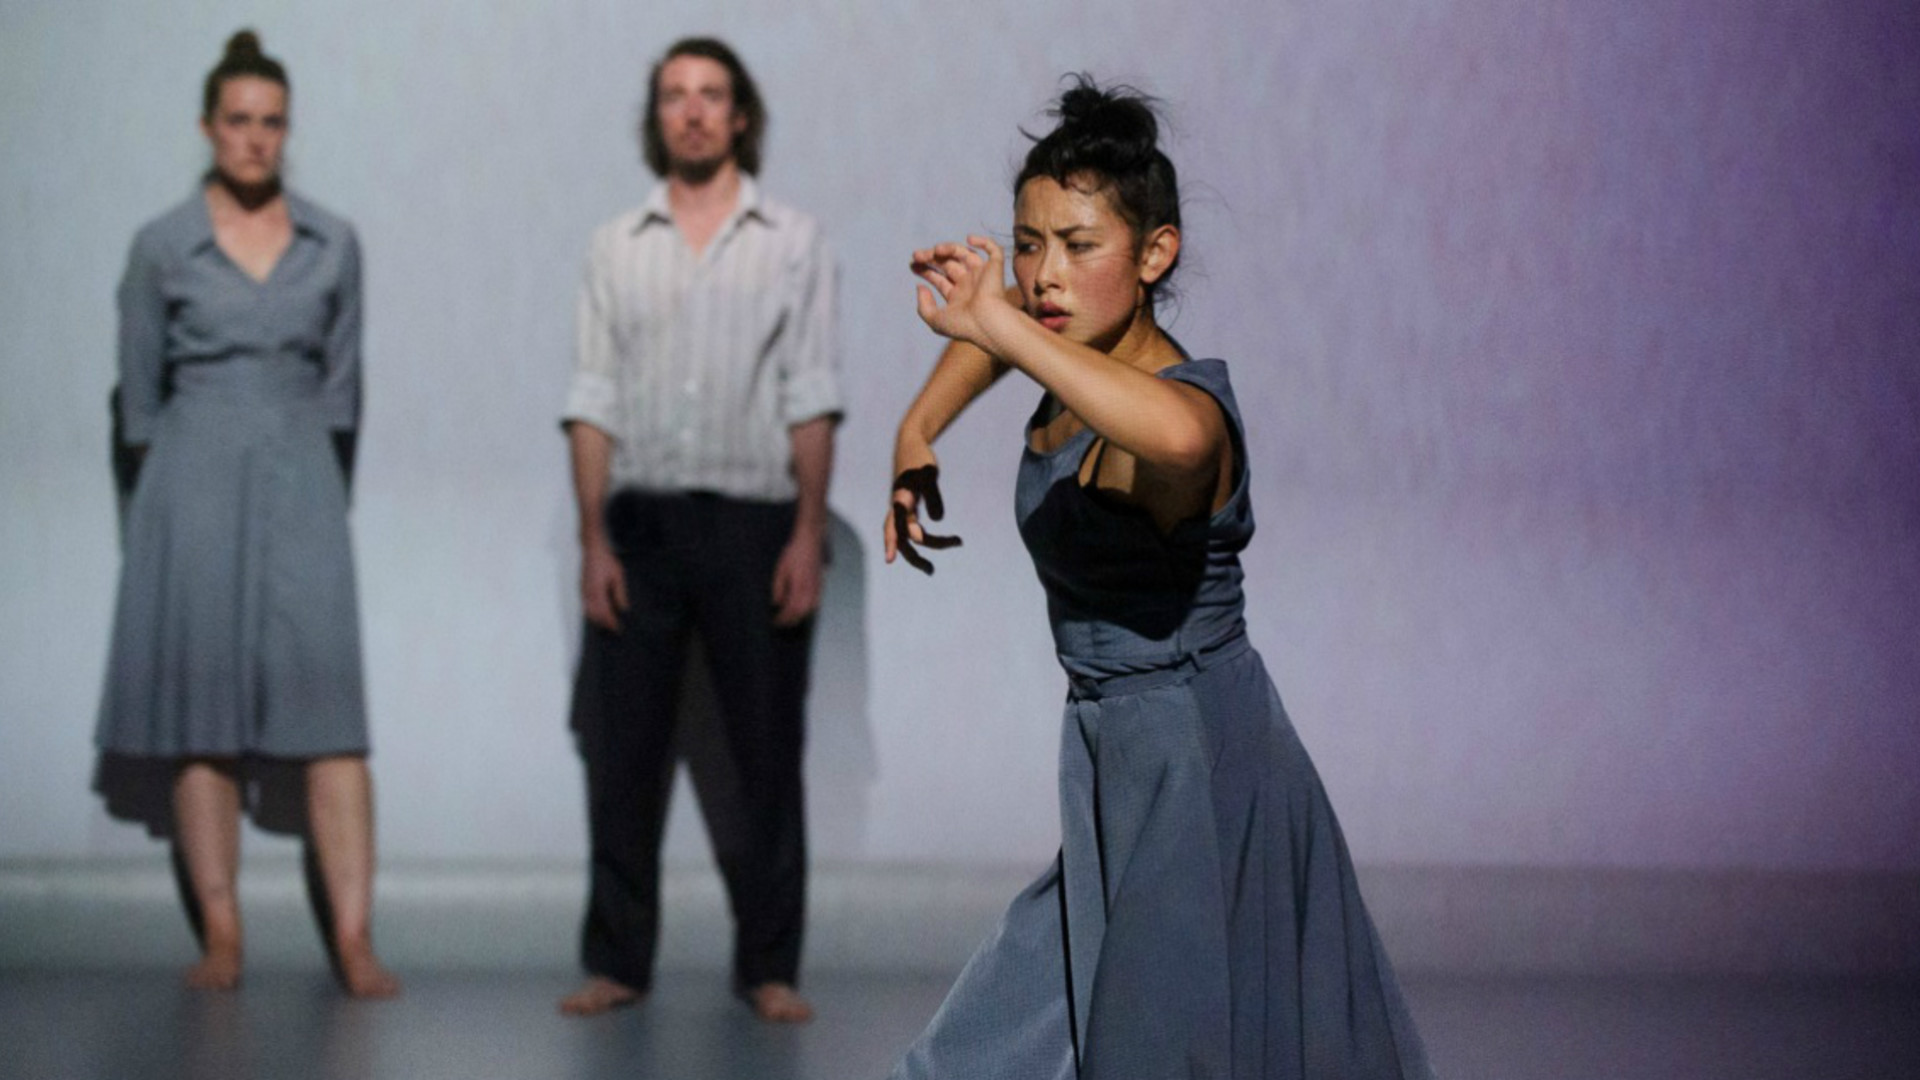 One dancer stands in the foreground with arms held up while two dancers stand in the background looking on.